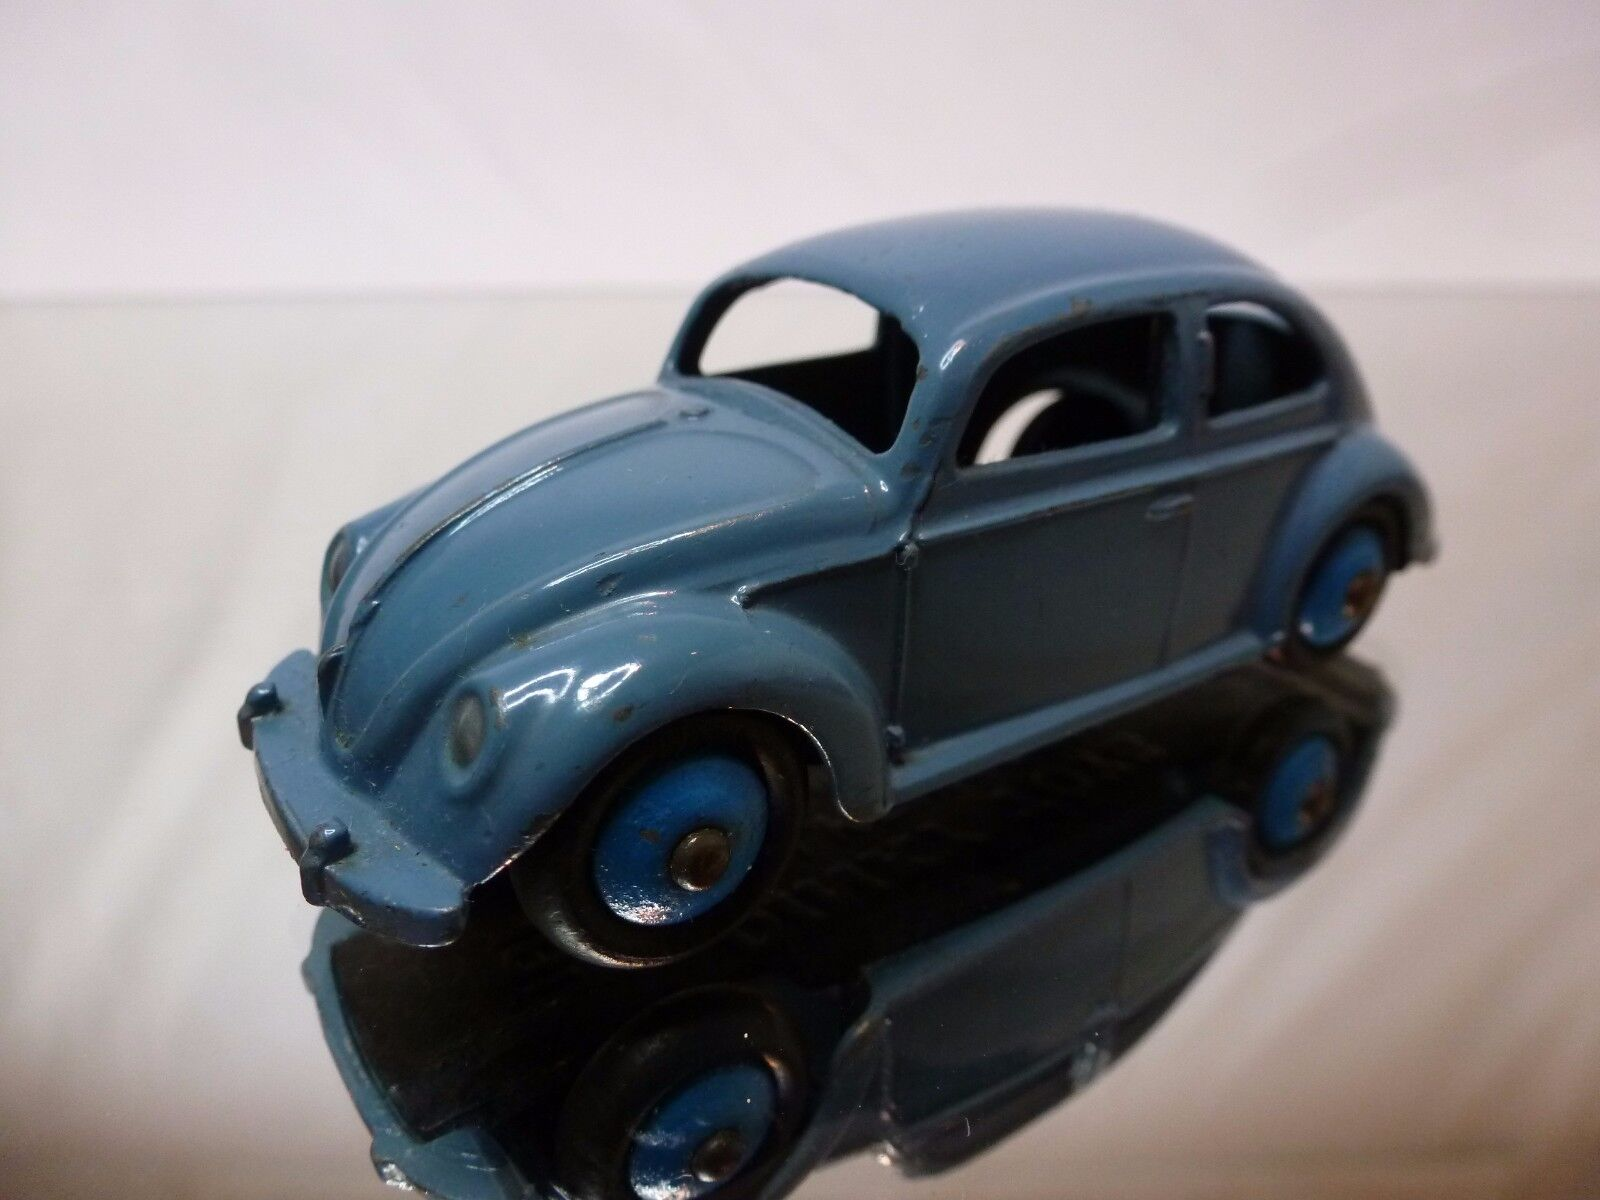 DINKY TOYS 181 VW VOLKSWAGEN BEETLE - blu 1 43 - VERY GOOD CONDITION